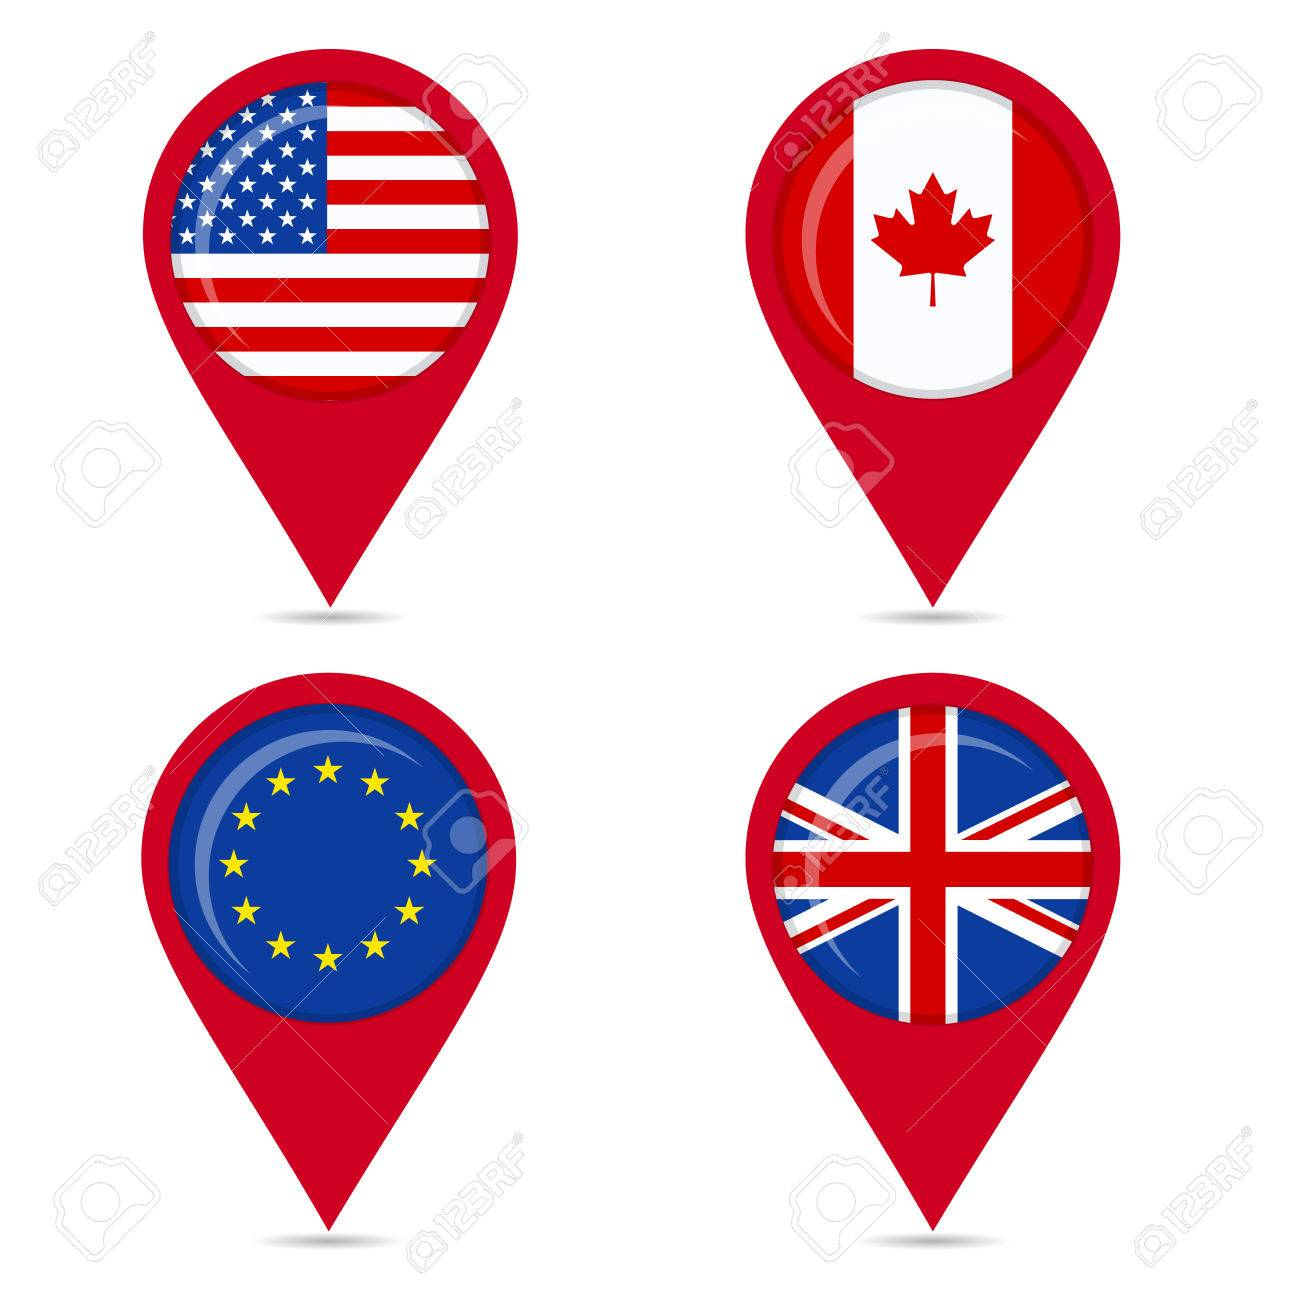 Map pin icons of national flags: united states, canada, europe,..